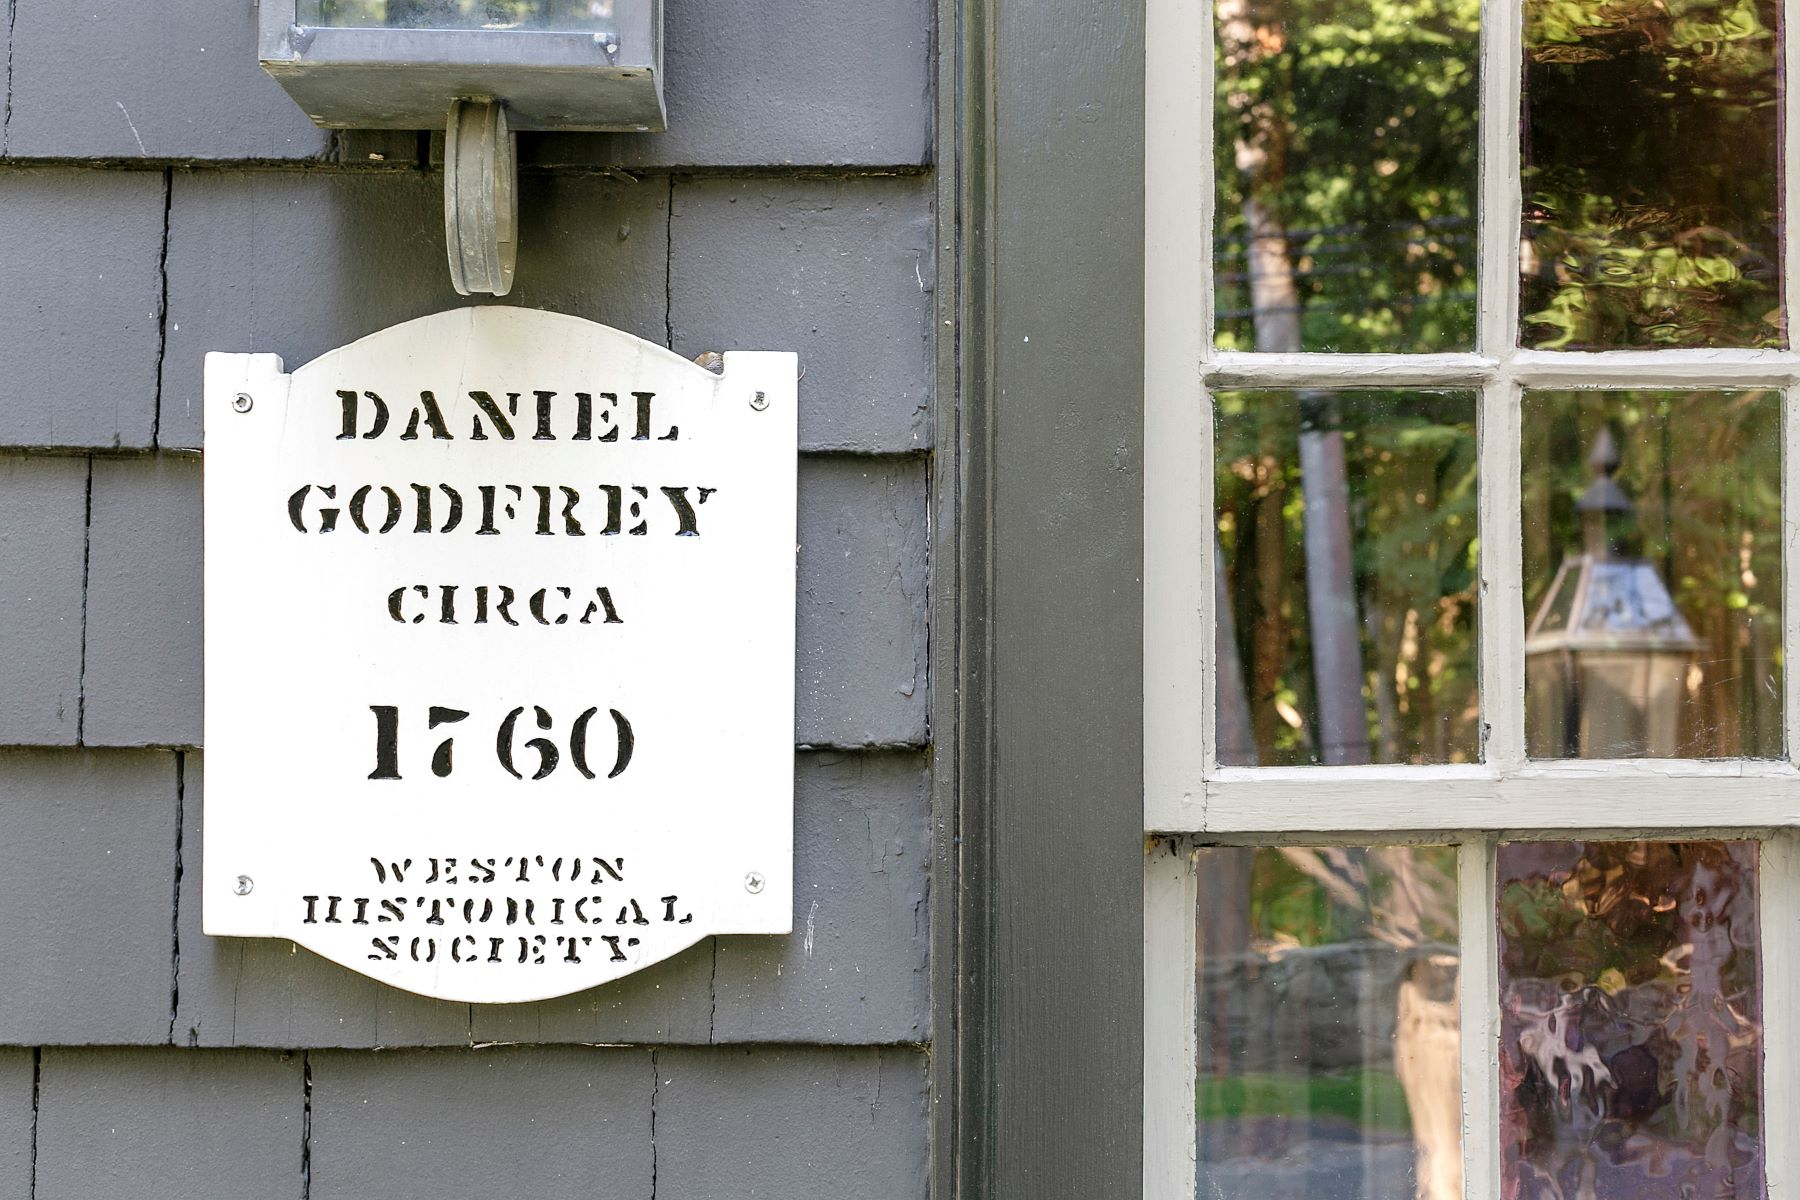 Casa Unifamiliar por un Venta en The Captain Daniel Godfrey House (c. 1760) 4 Norfield Road Weston, Connecticut 06883 Estados Unidos